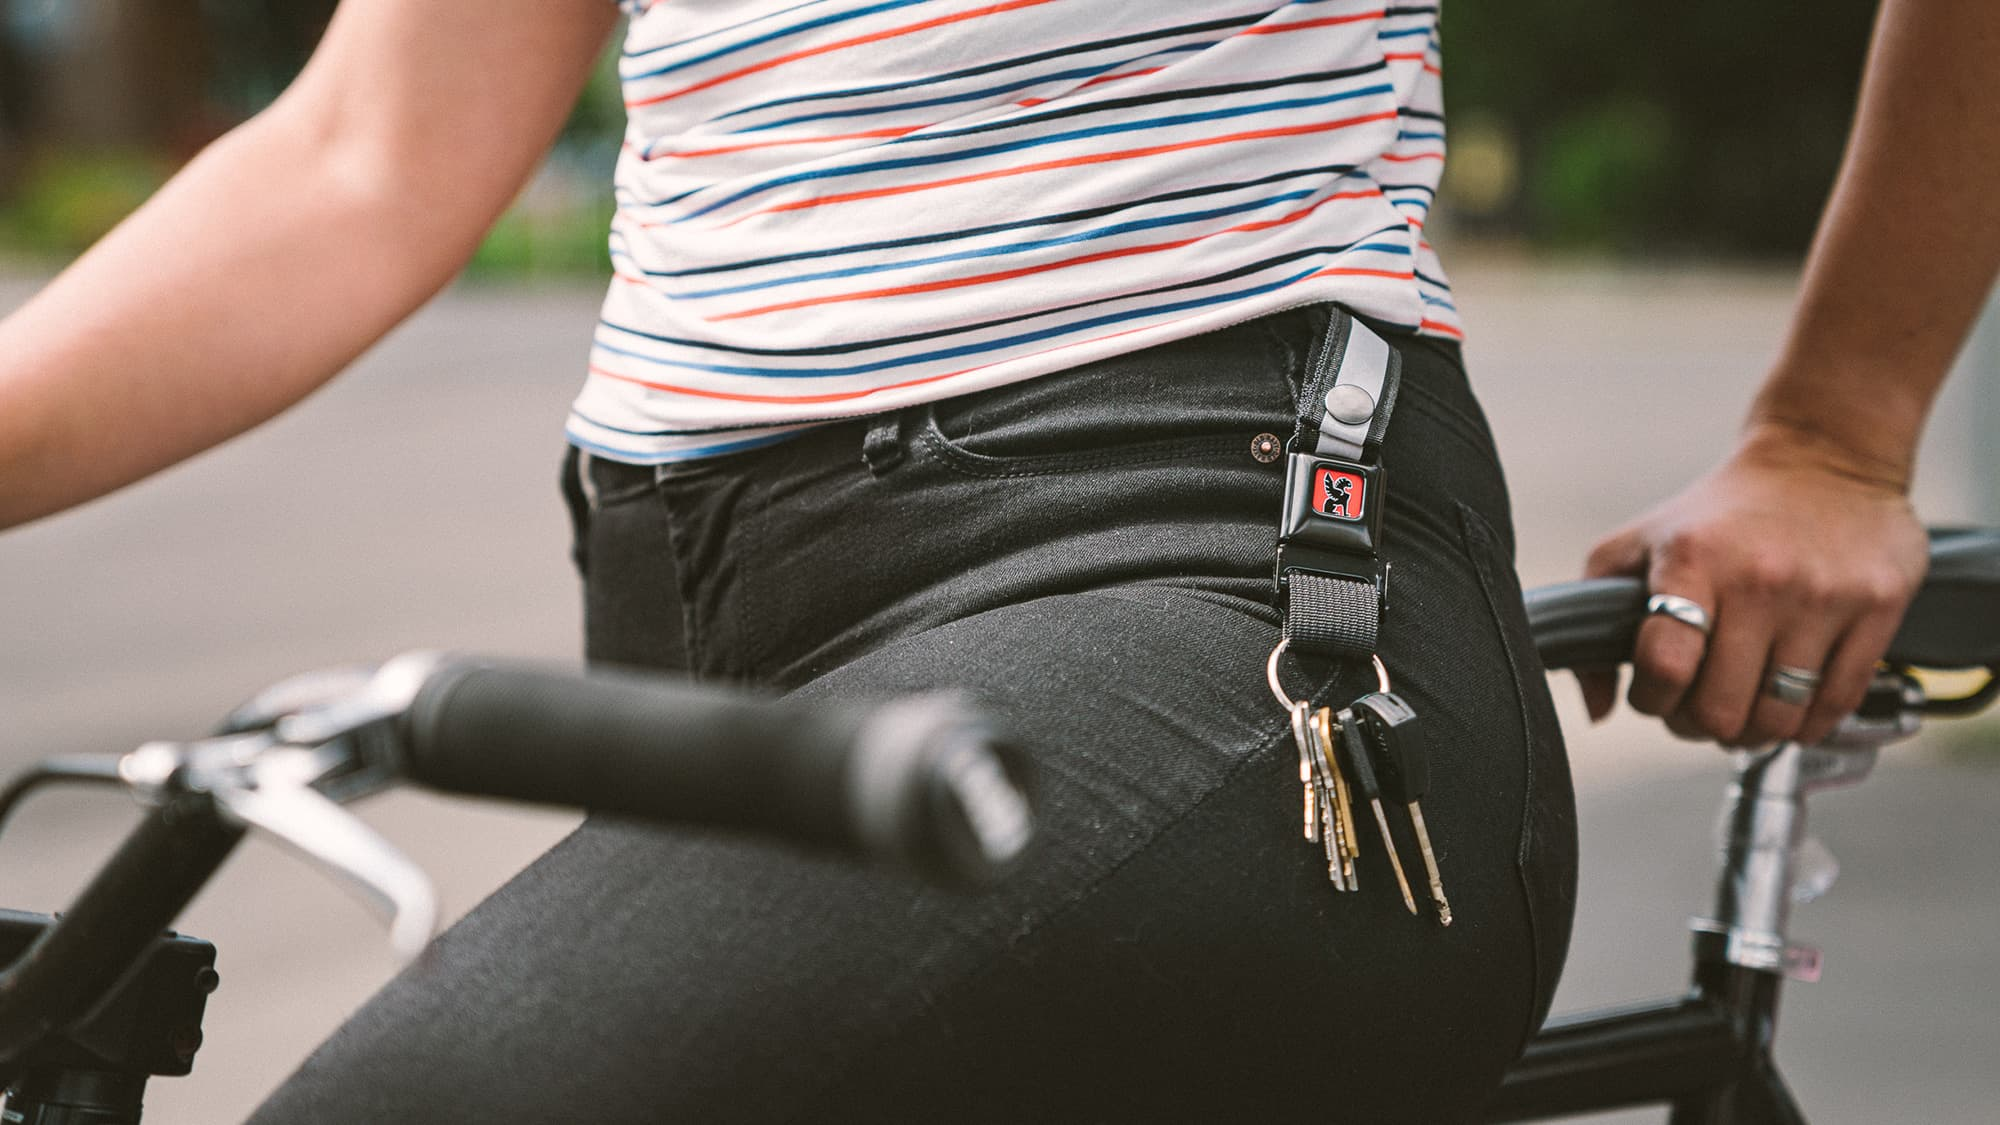 keychain connected to women's belt